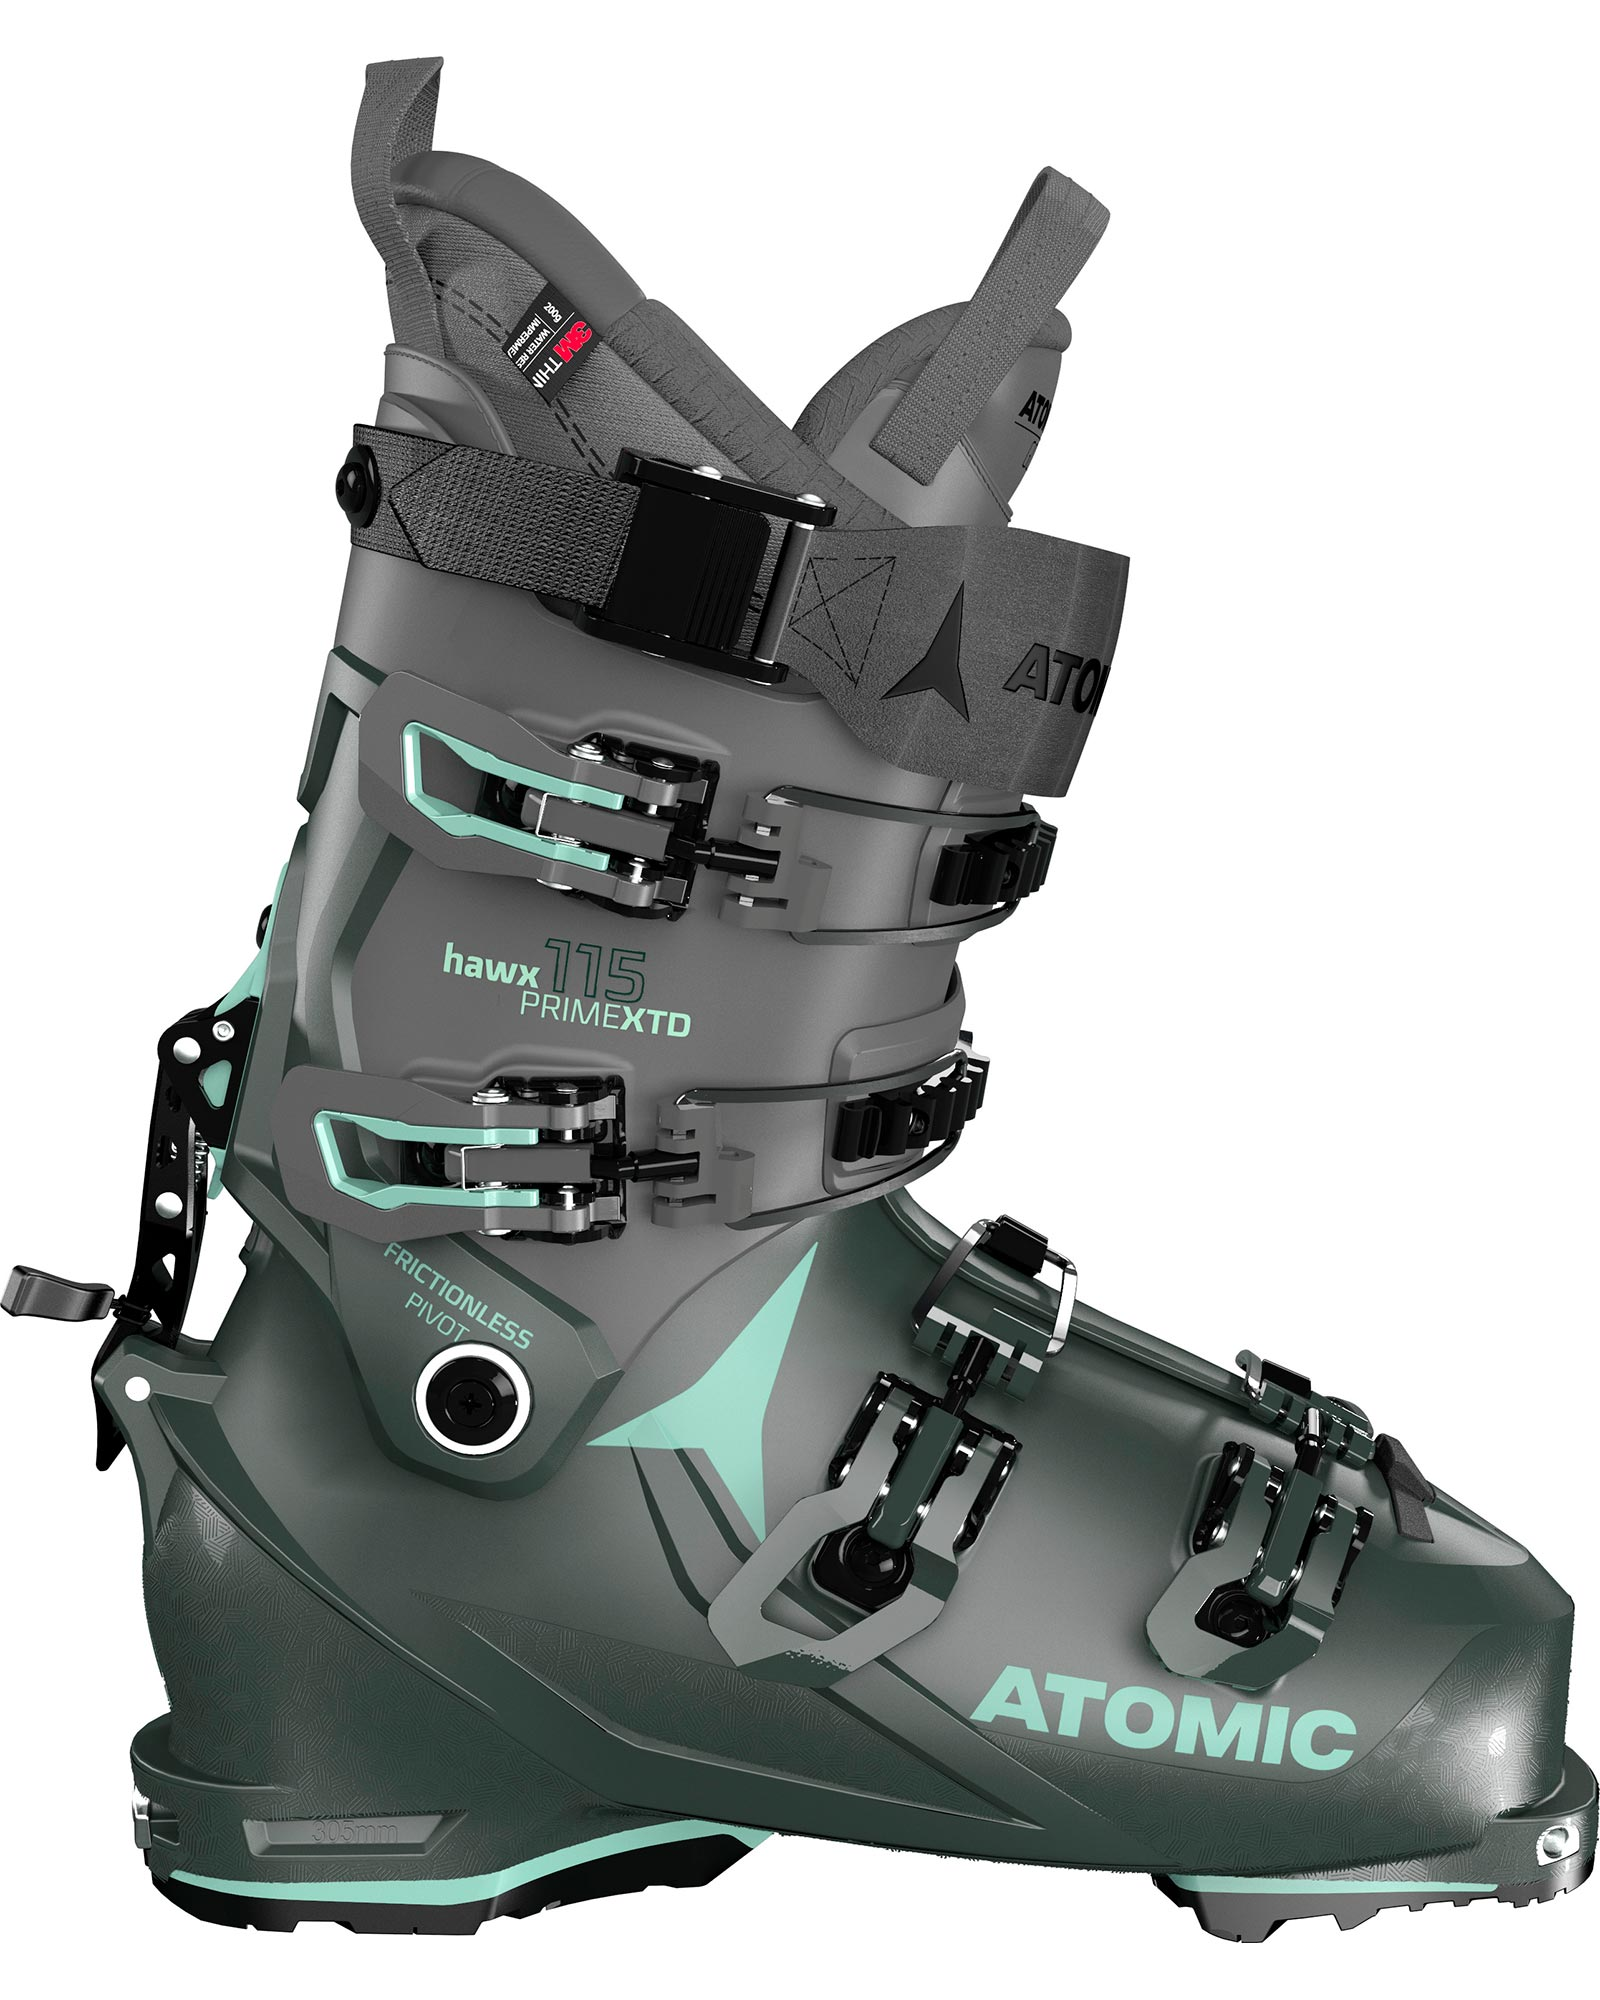 Atomic Women's Hawx Prime XTD 115 W Tech GW Backcountry Ski Boots 2021 0